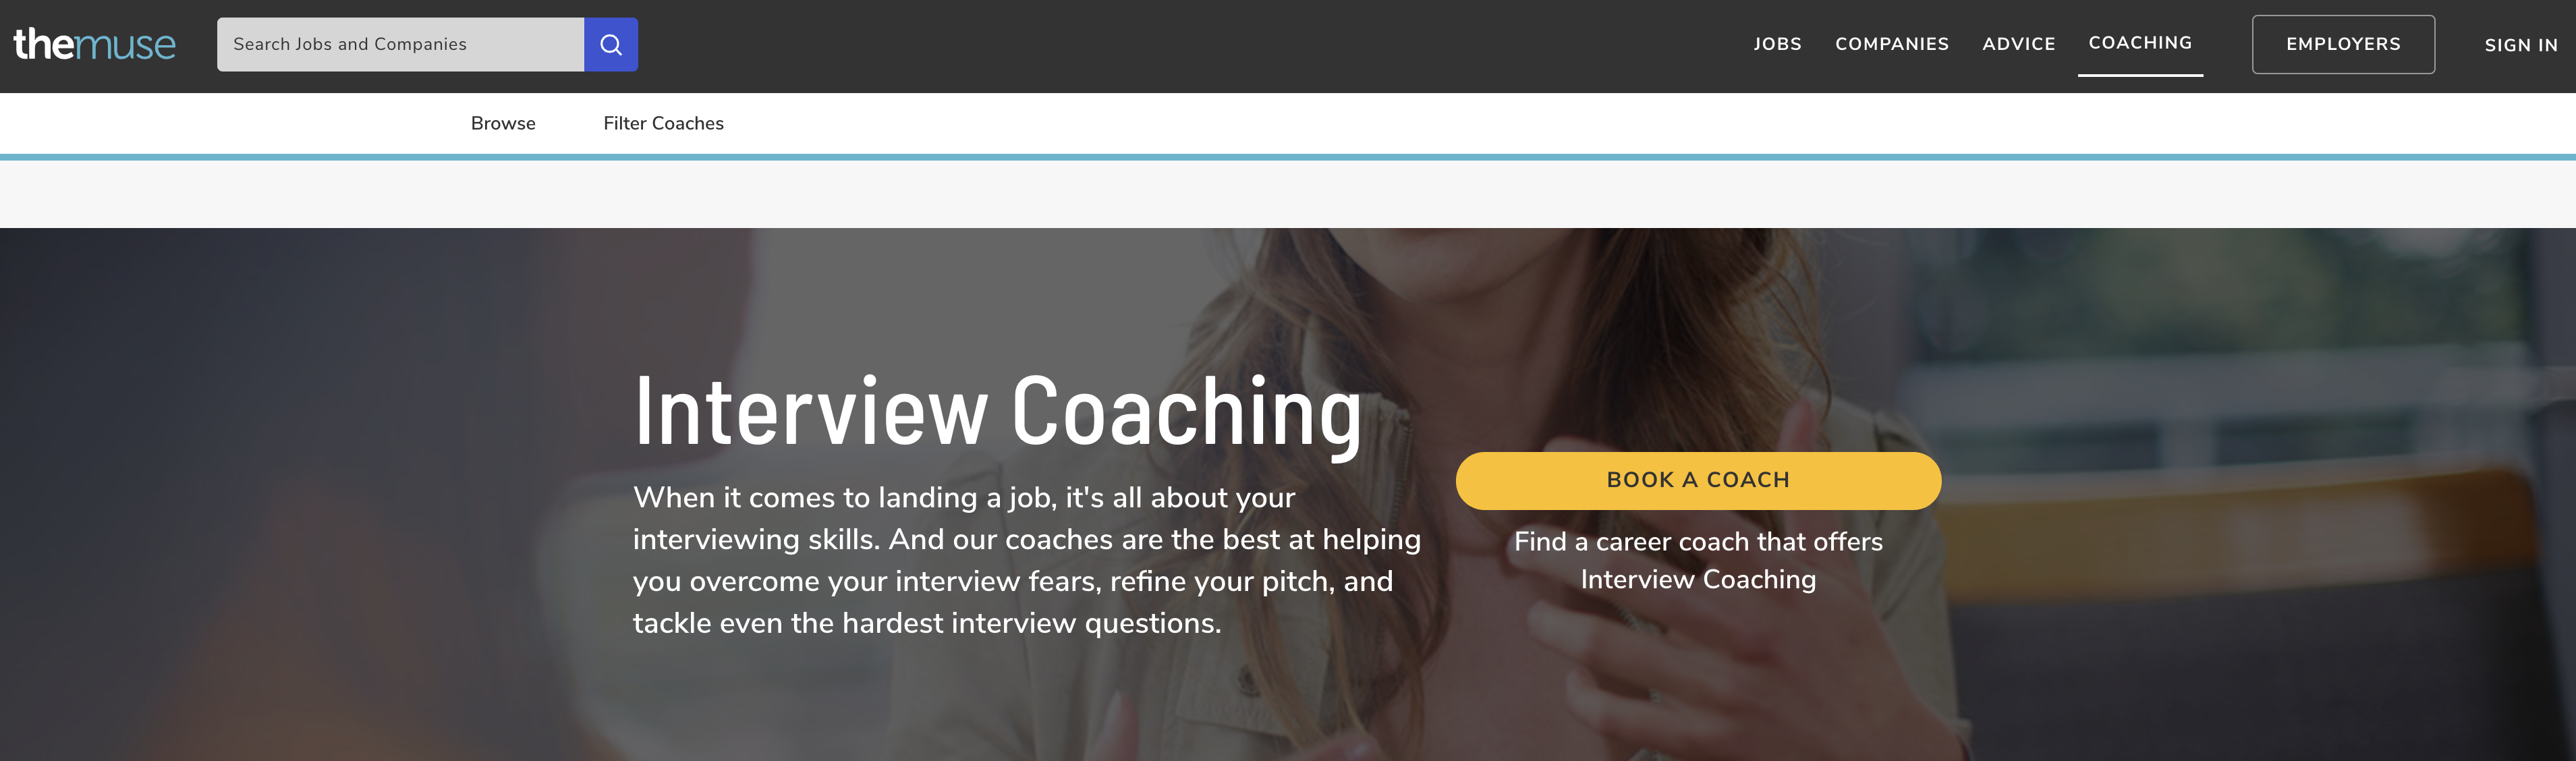 TheMuse Interview Coaching Services